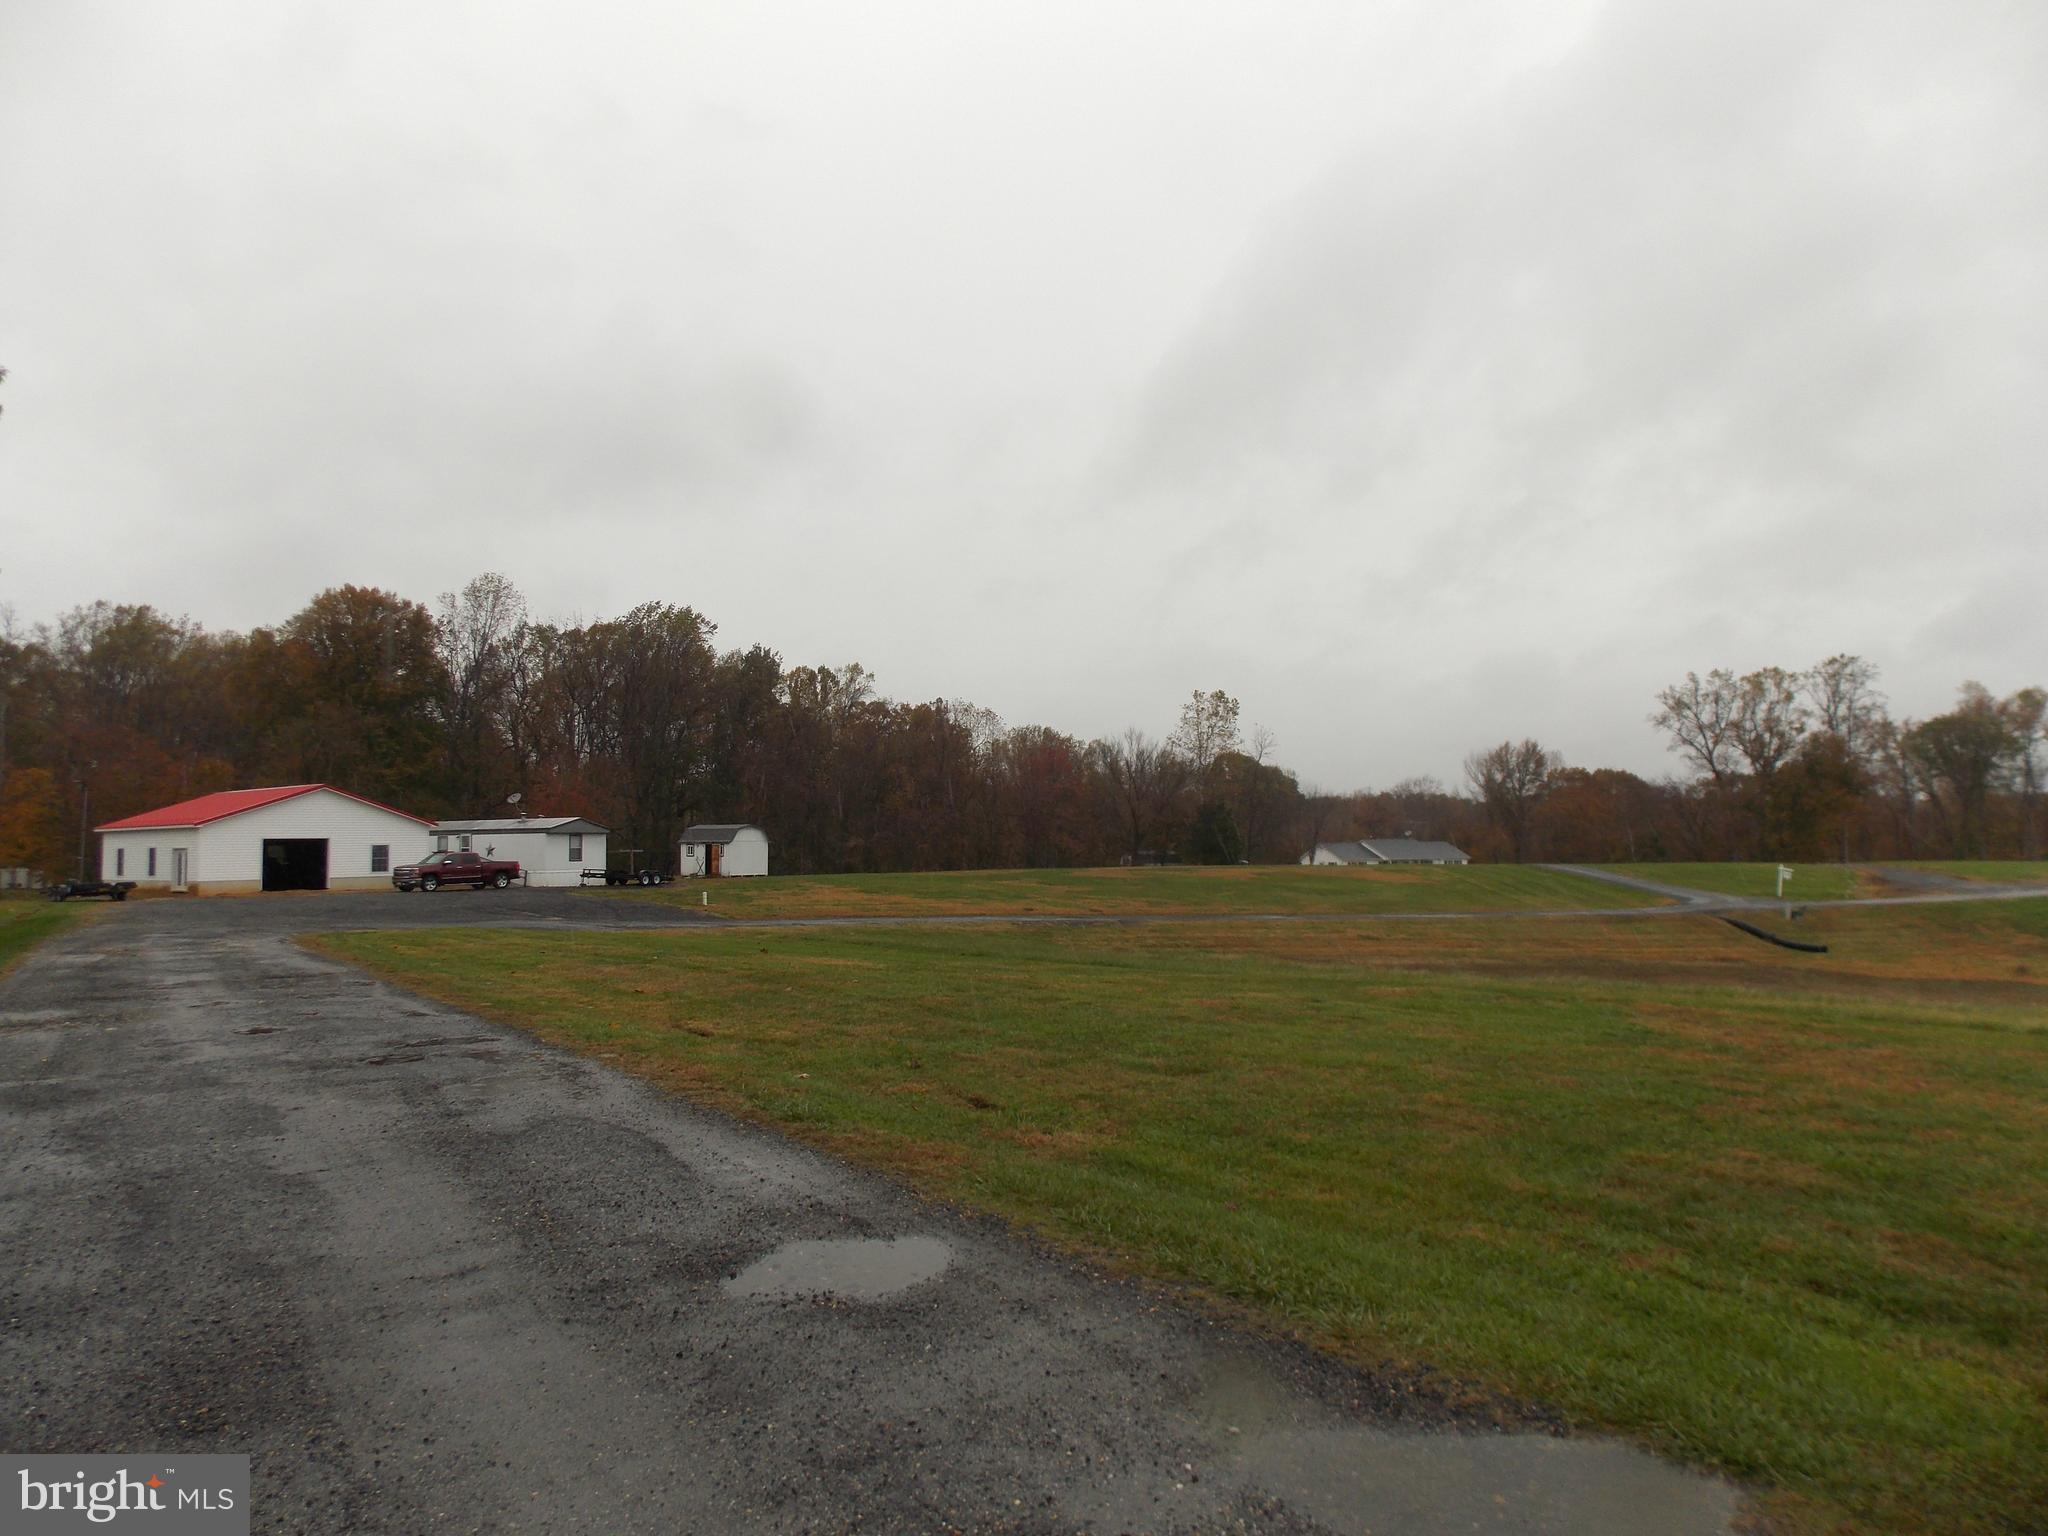 3 Bedrooms 2 Bath Trailer with 6 car garage! BEAUTIFUL piece of property to build your dream home. L